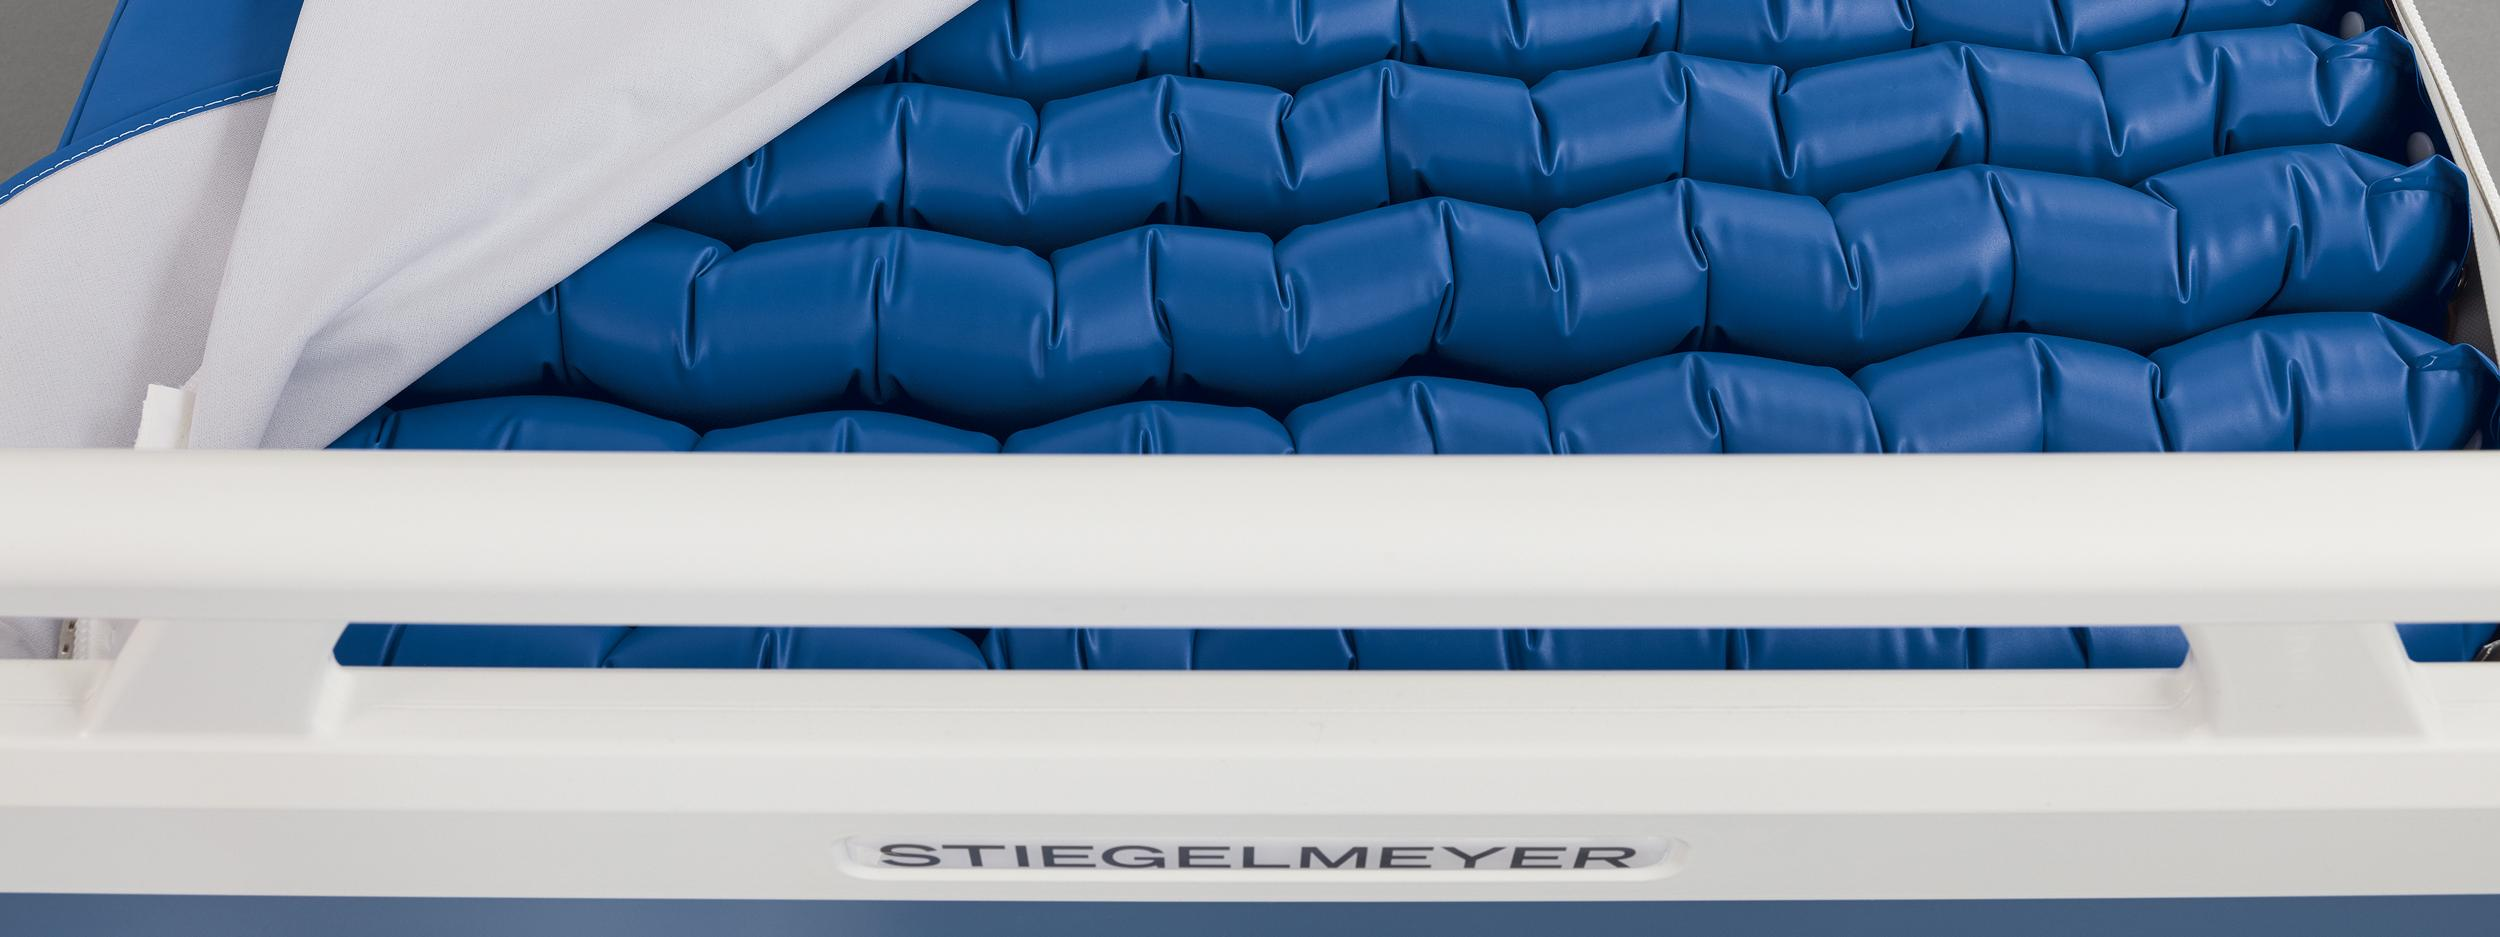 Low air loss feature of the Aero4 system air cell mattress